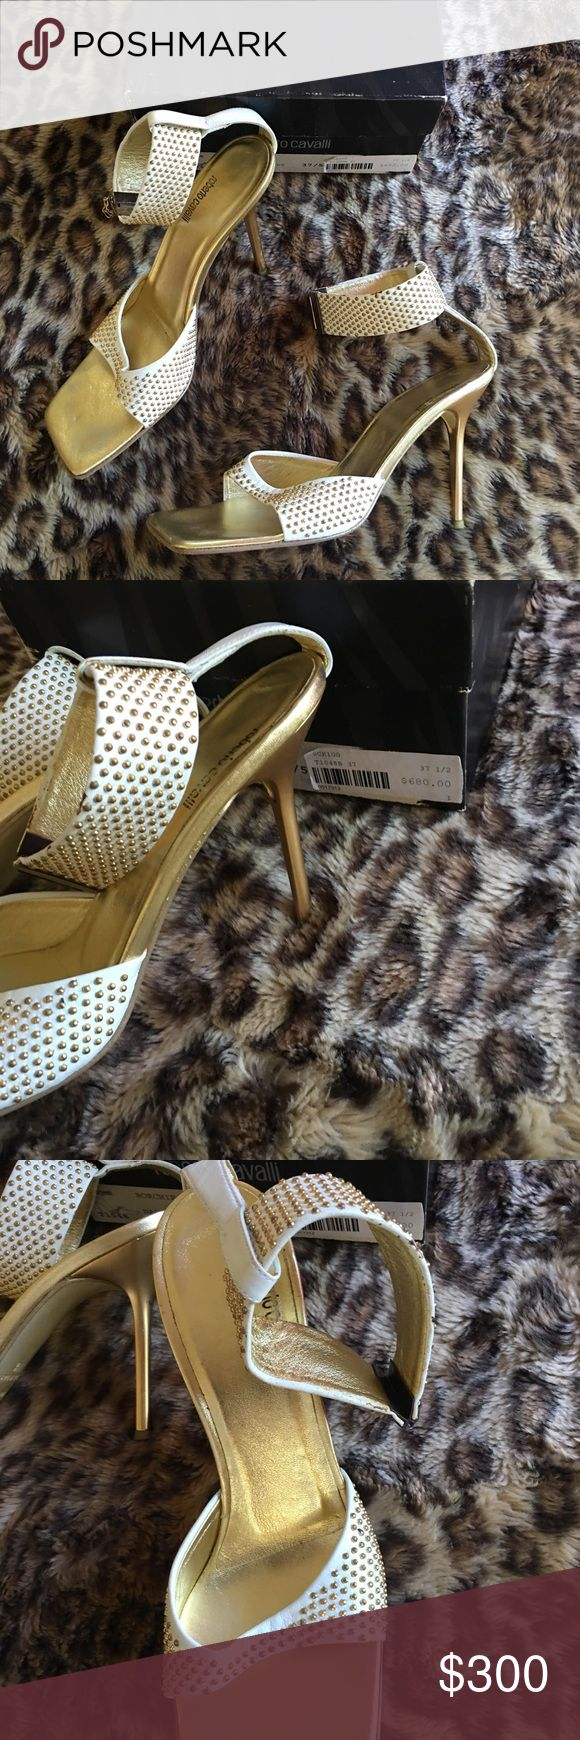 Roberto Cavalli White & Gold Shoes Beautiful white and gold shoes by designer Roberto Cavalli. Worn gently. Roberto Cavalli Shoes Heels